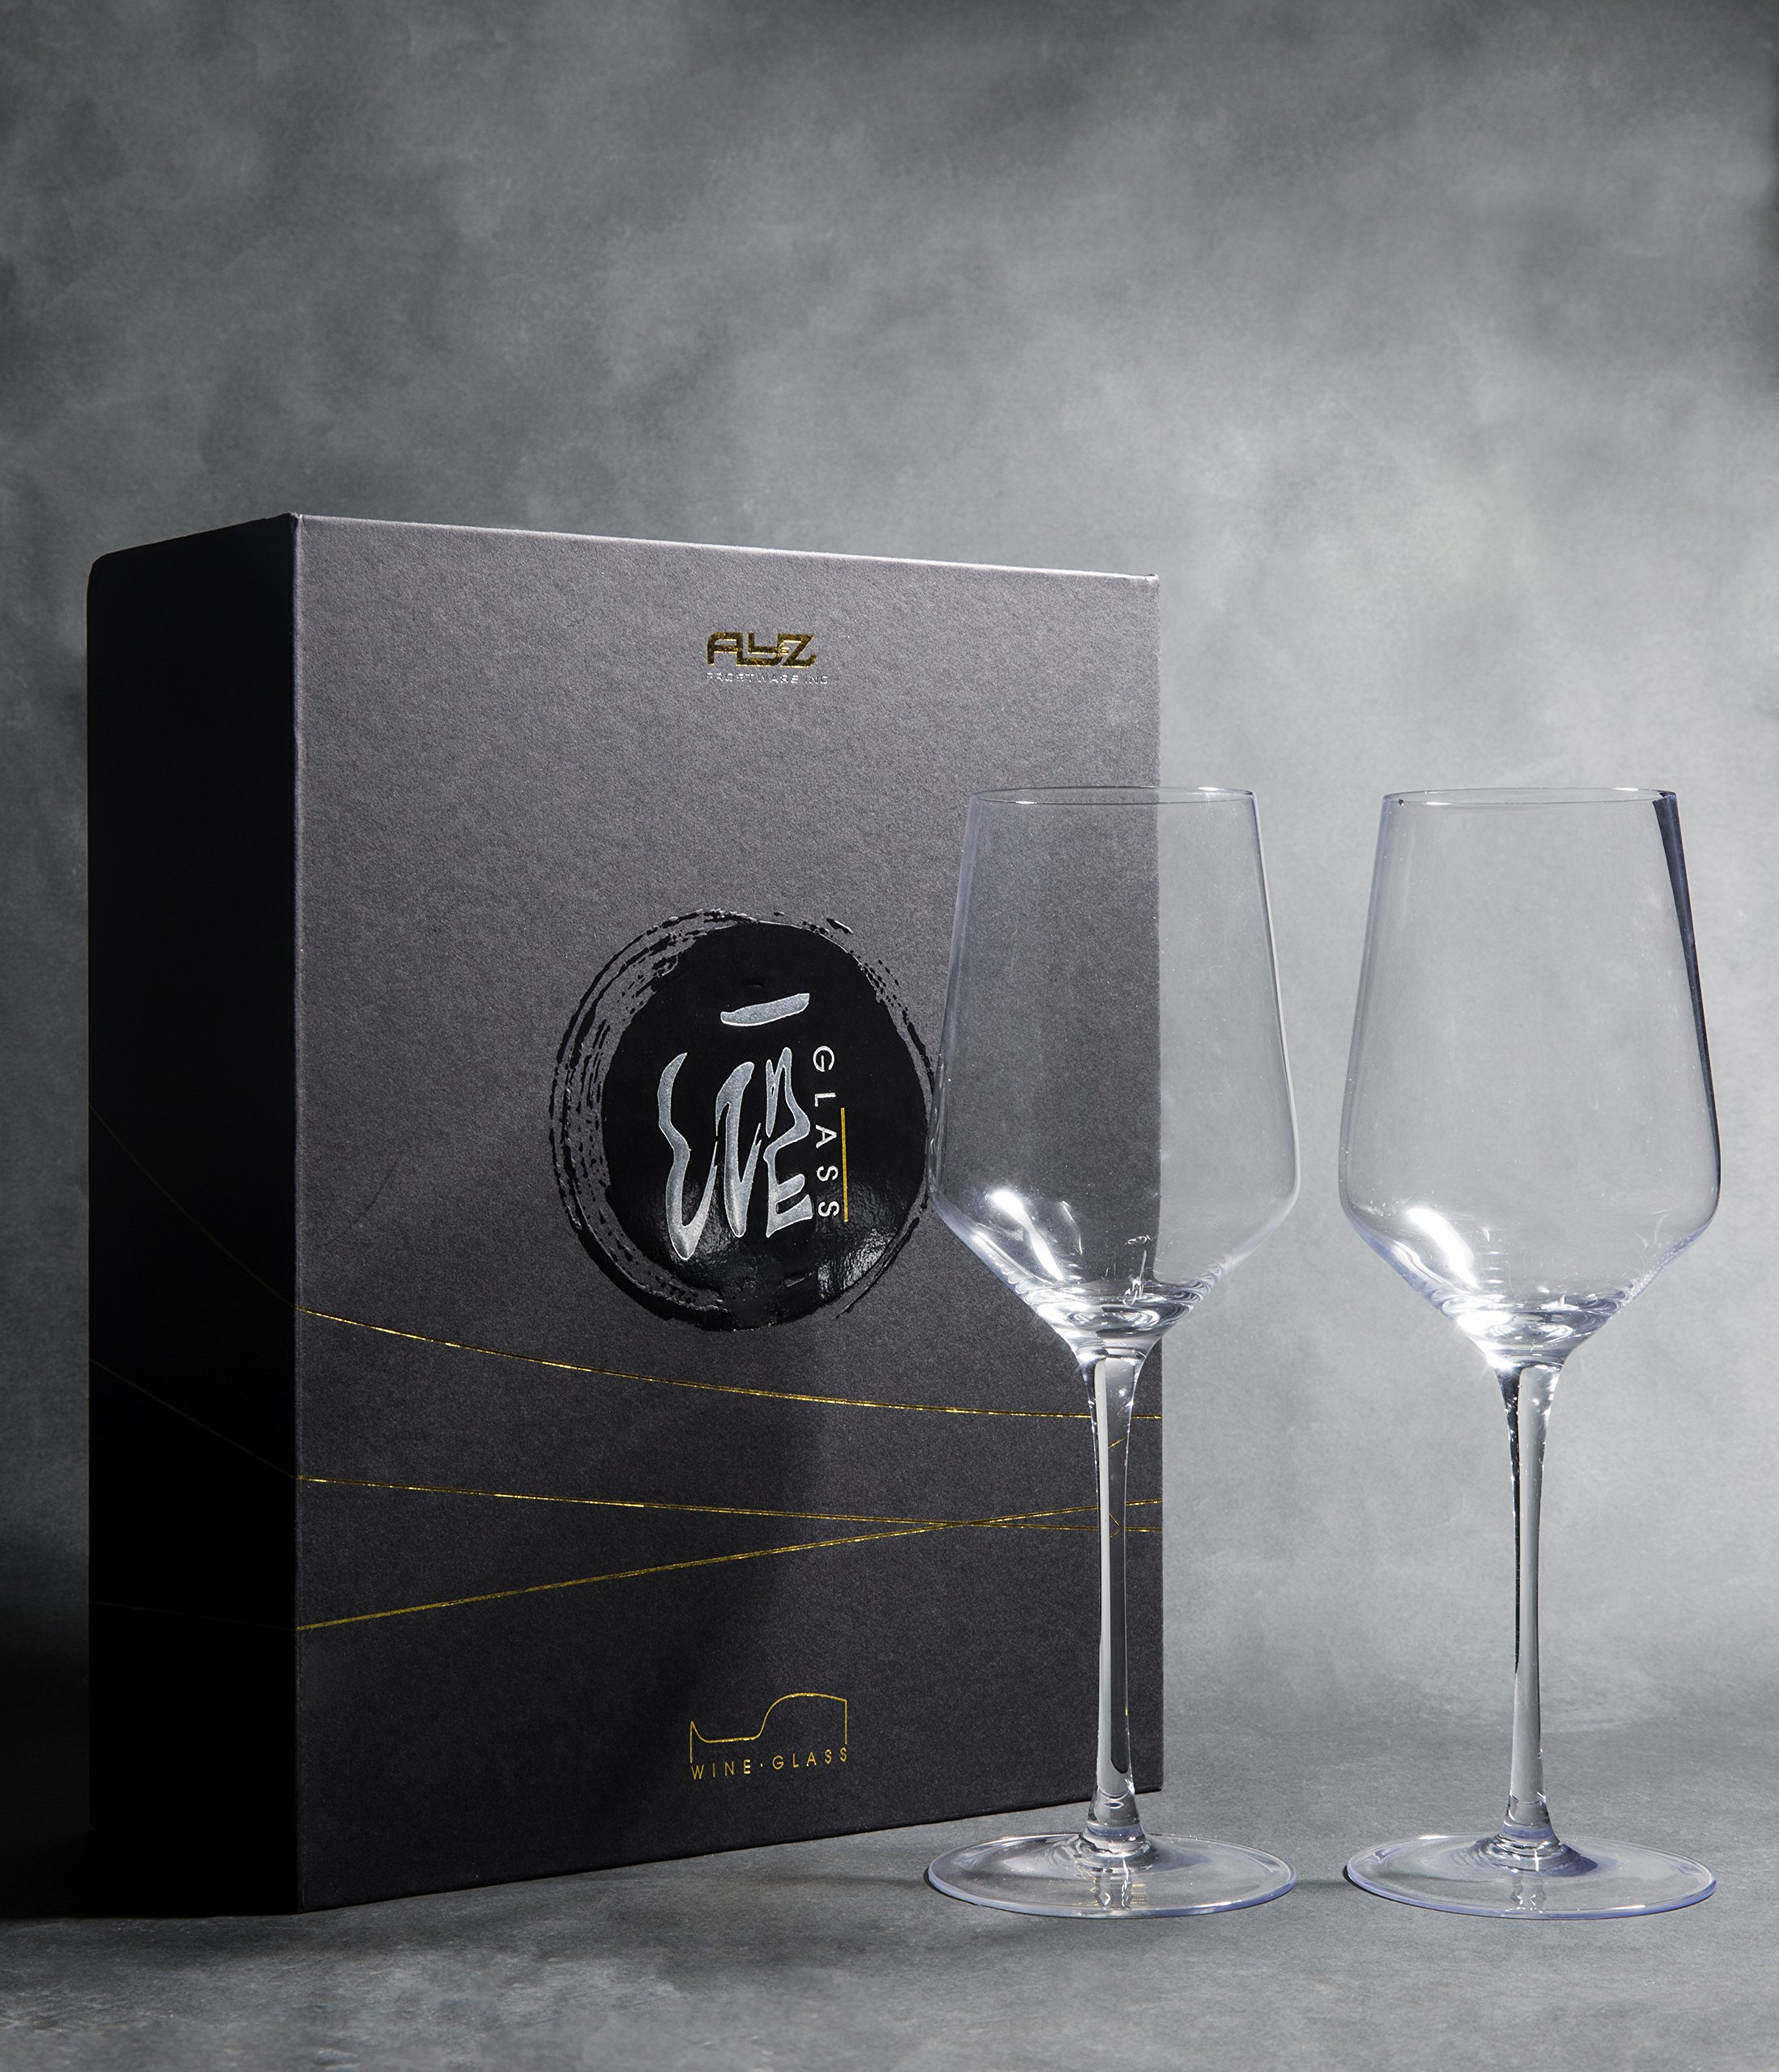 Merry Crystal- Set of 2 Clear Glass Drinking Cups - 17oz Restaurant Style Stemware - Elegant Box by Award Winning Designer with Special Xmas Bag- Unleaded - Dishwasher Safe by AY&Z Frostware (Image #2)